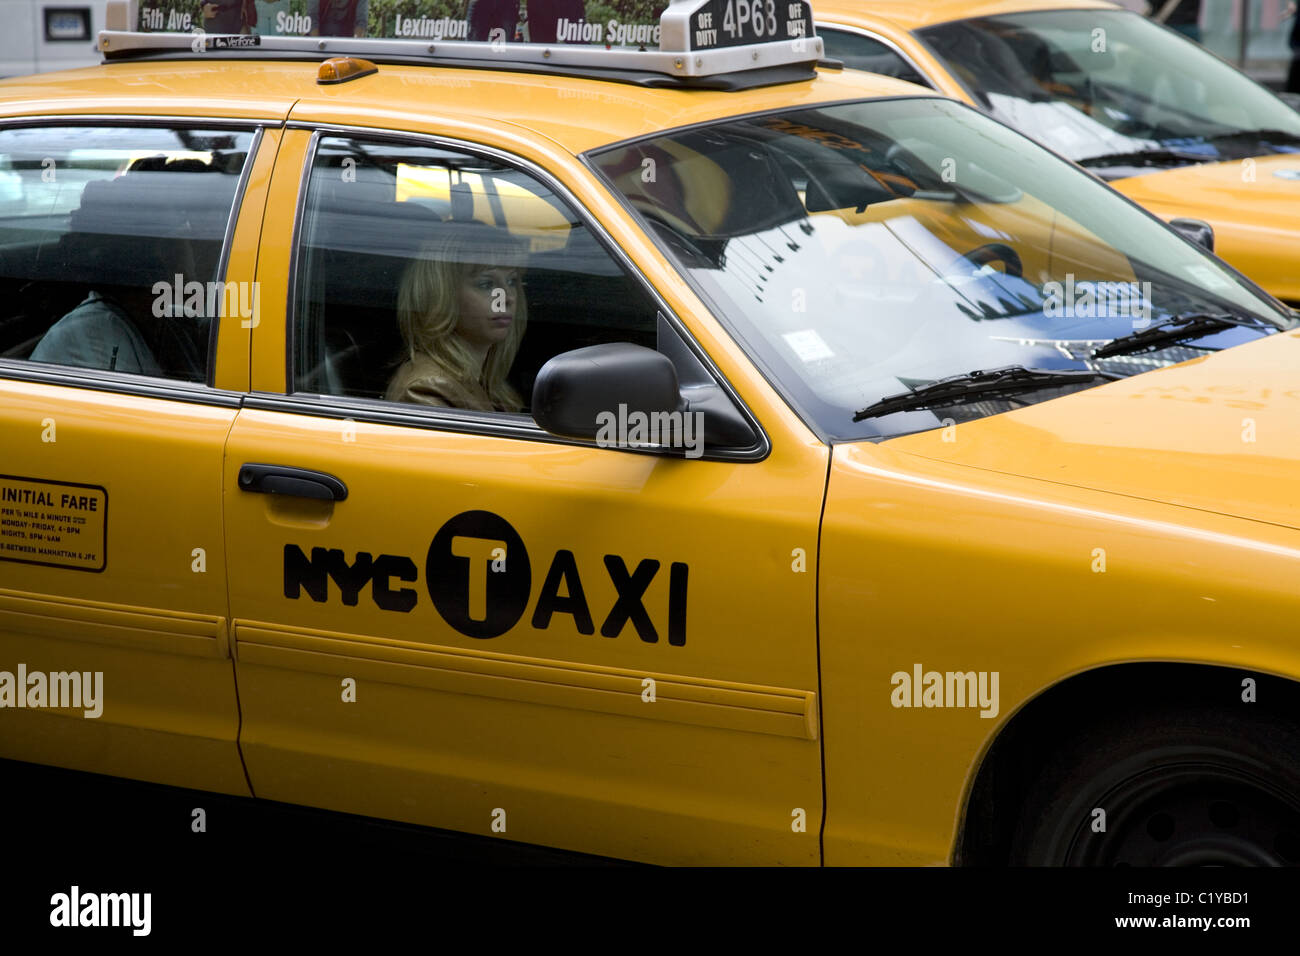 New York City Taxicab in midtown Manhattan. - Stock Image